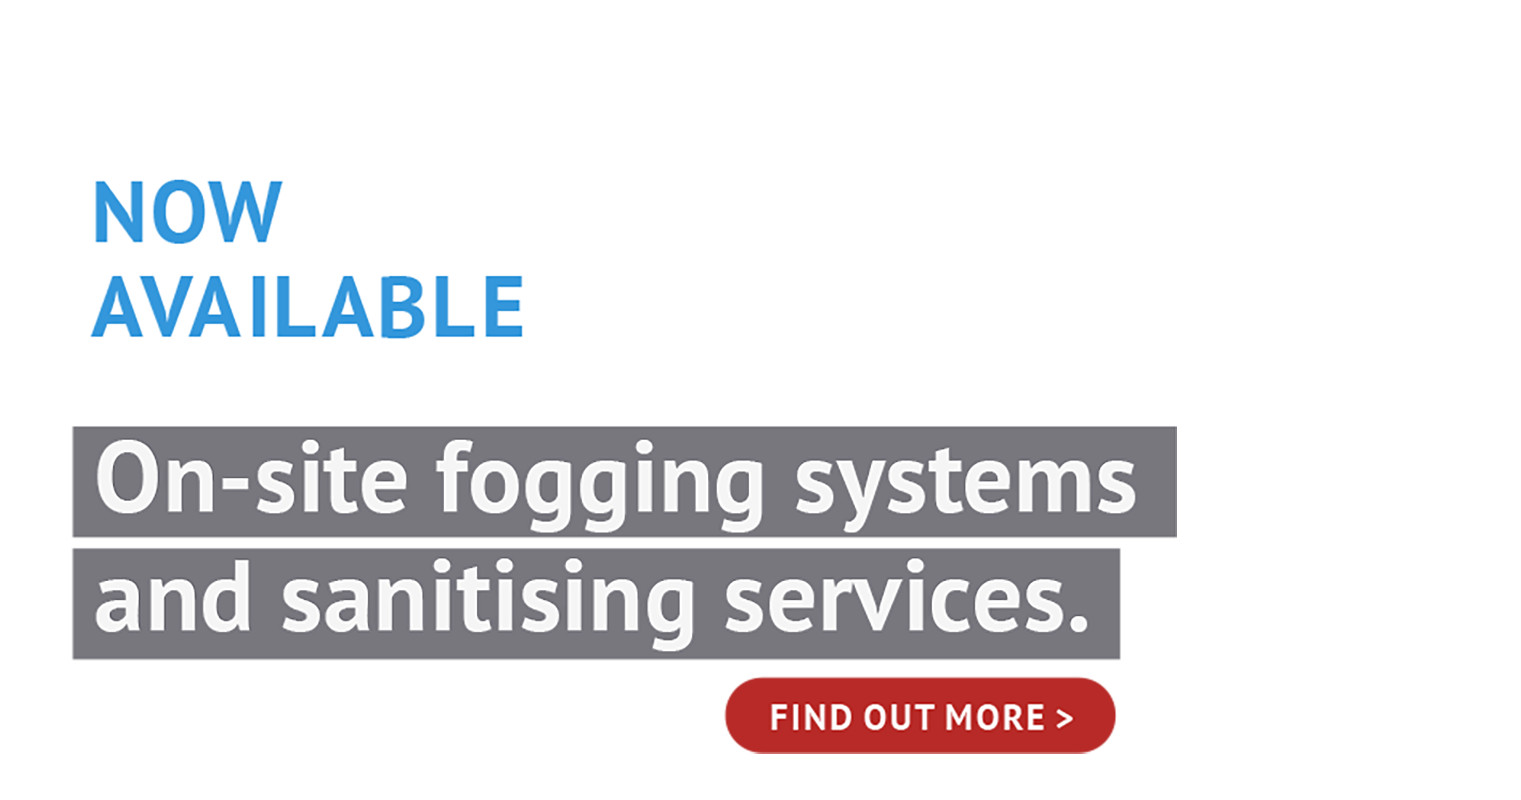 Now available. On-site fogging systems and sanitising services. Find out more